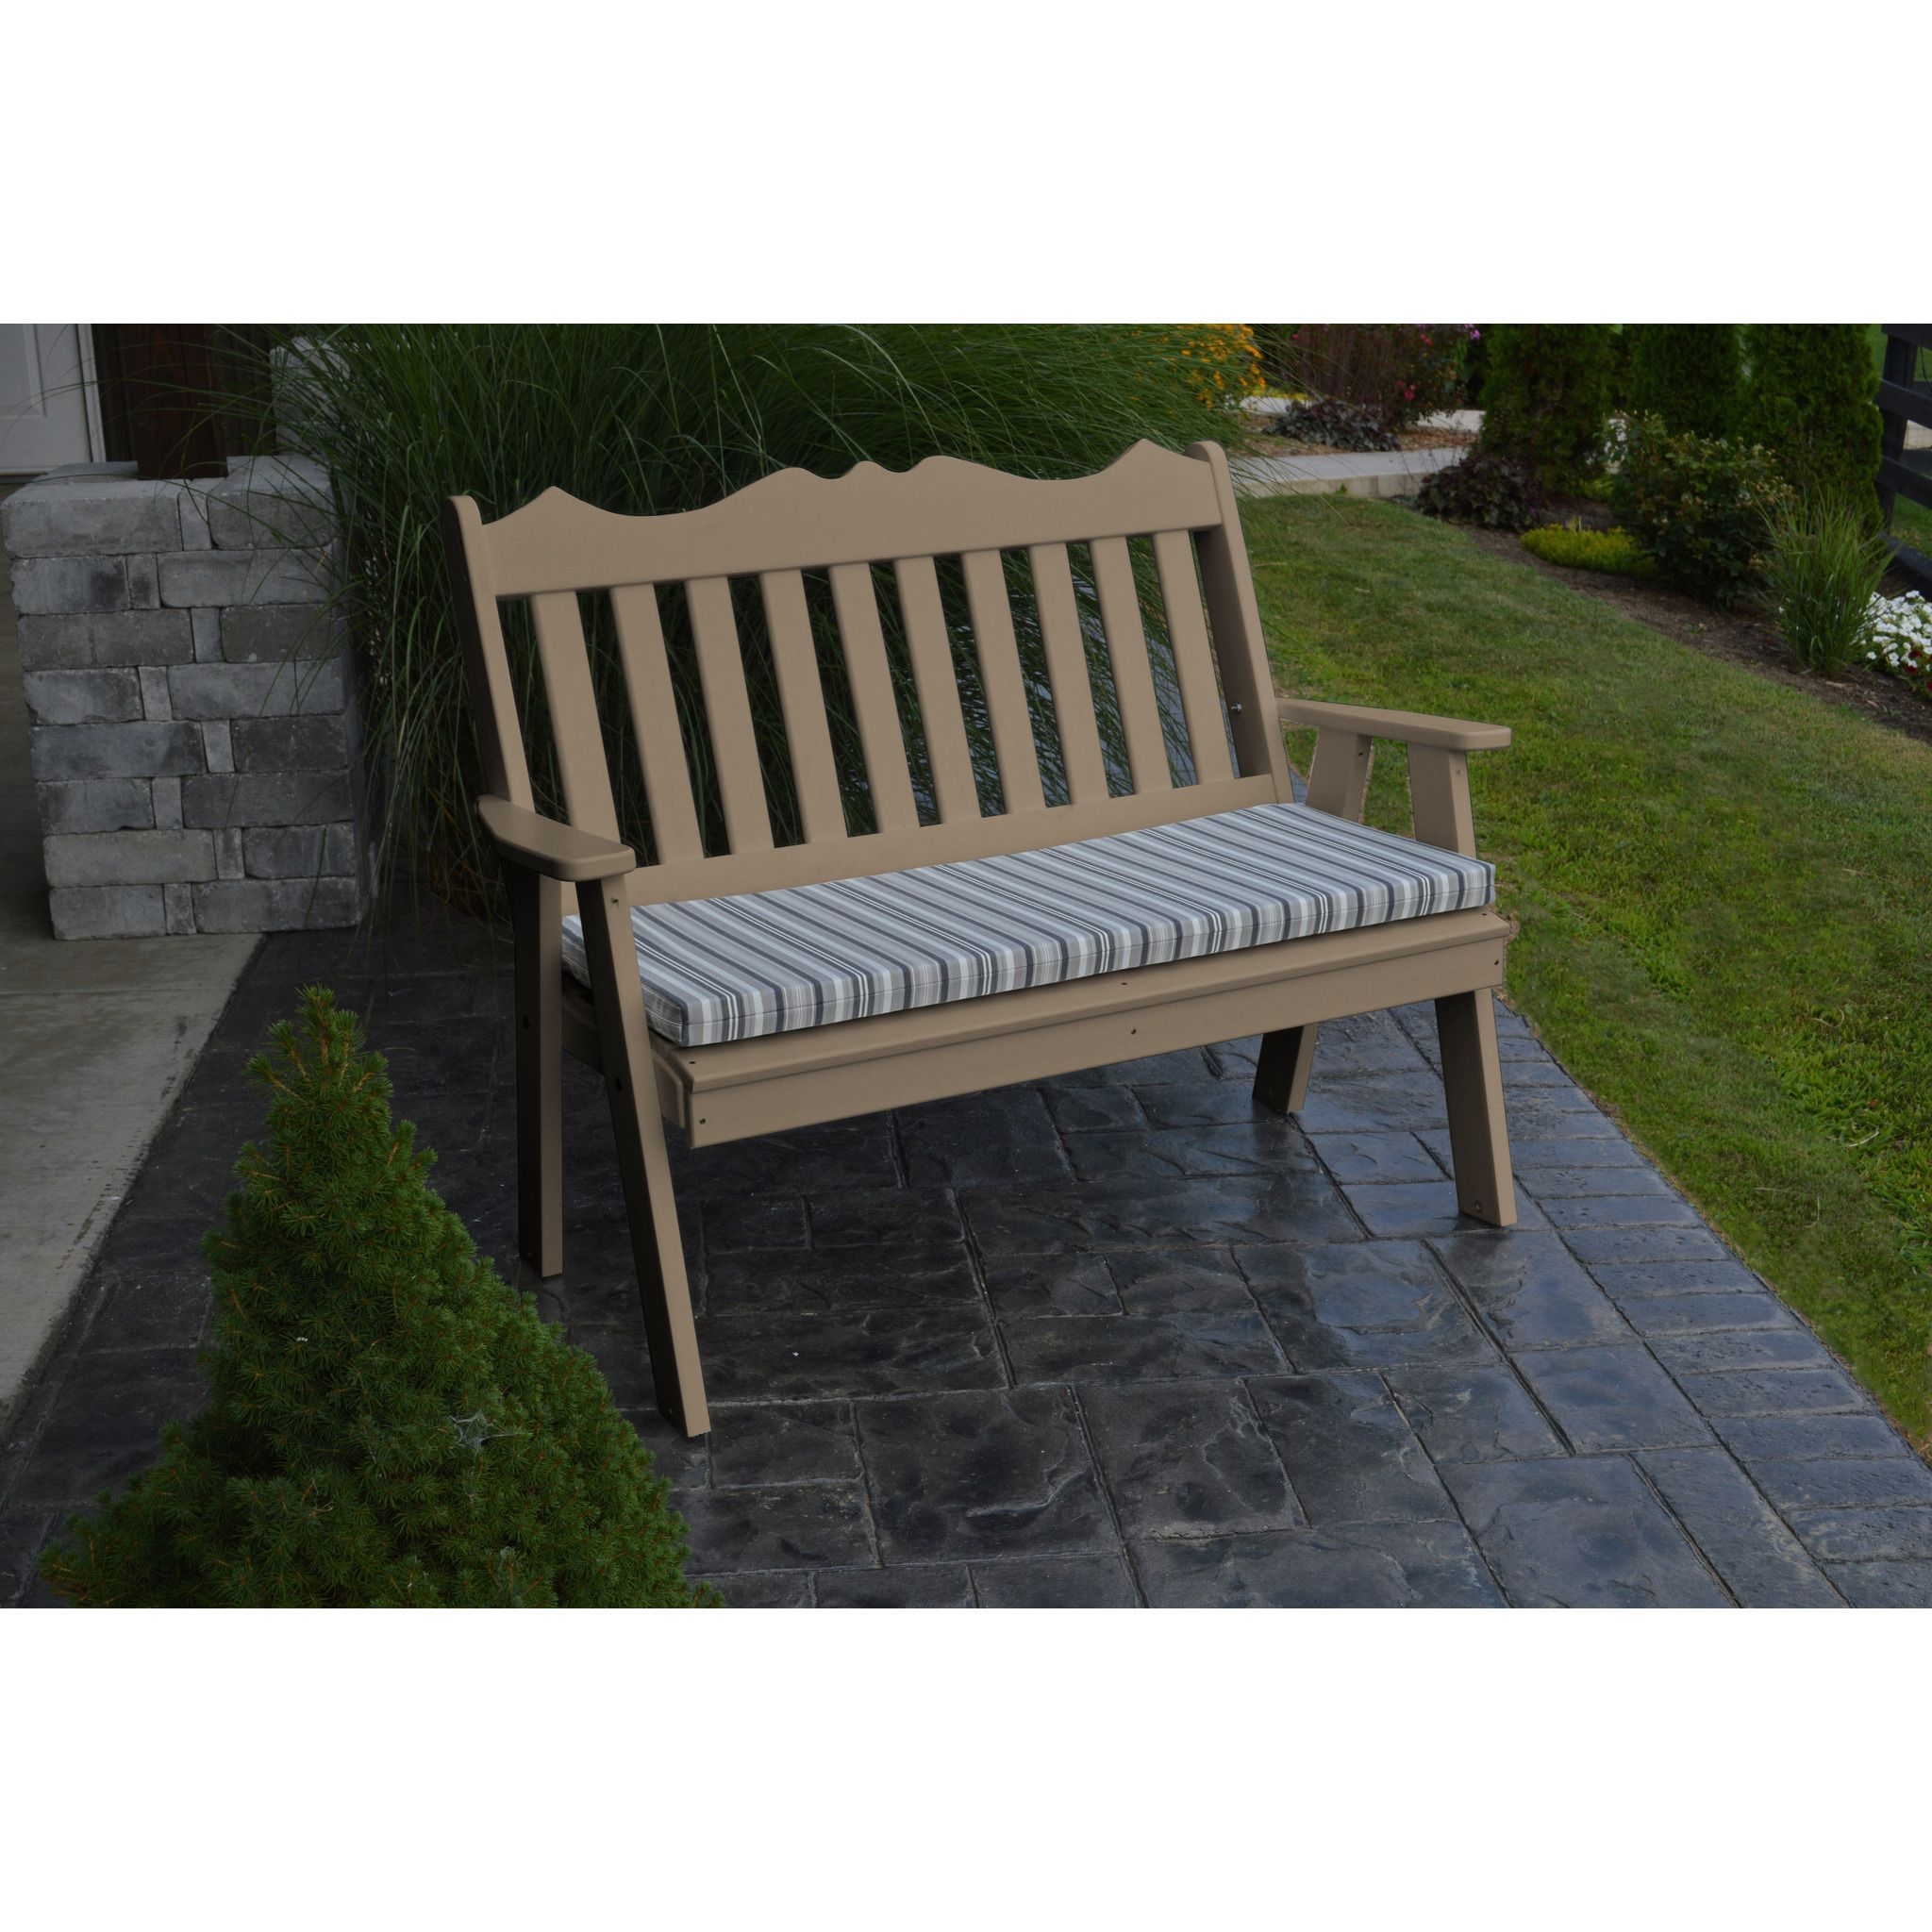 A&L Furniture pany Recycled Plastic 4 Royal English Garden Bench